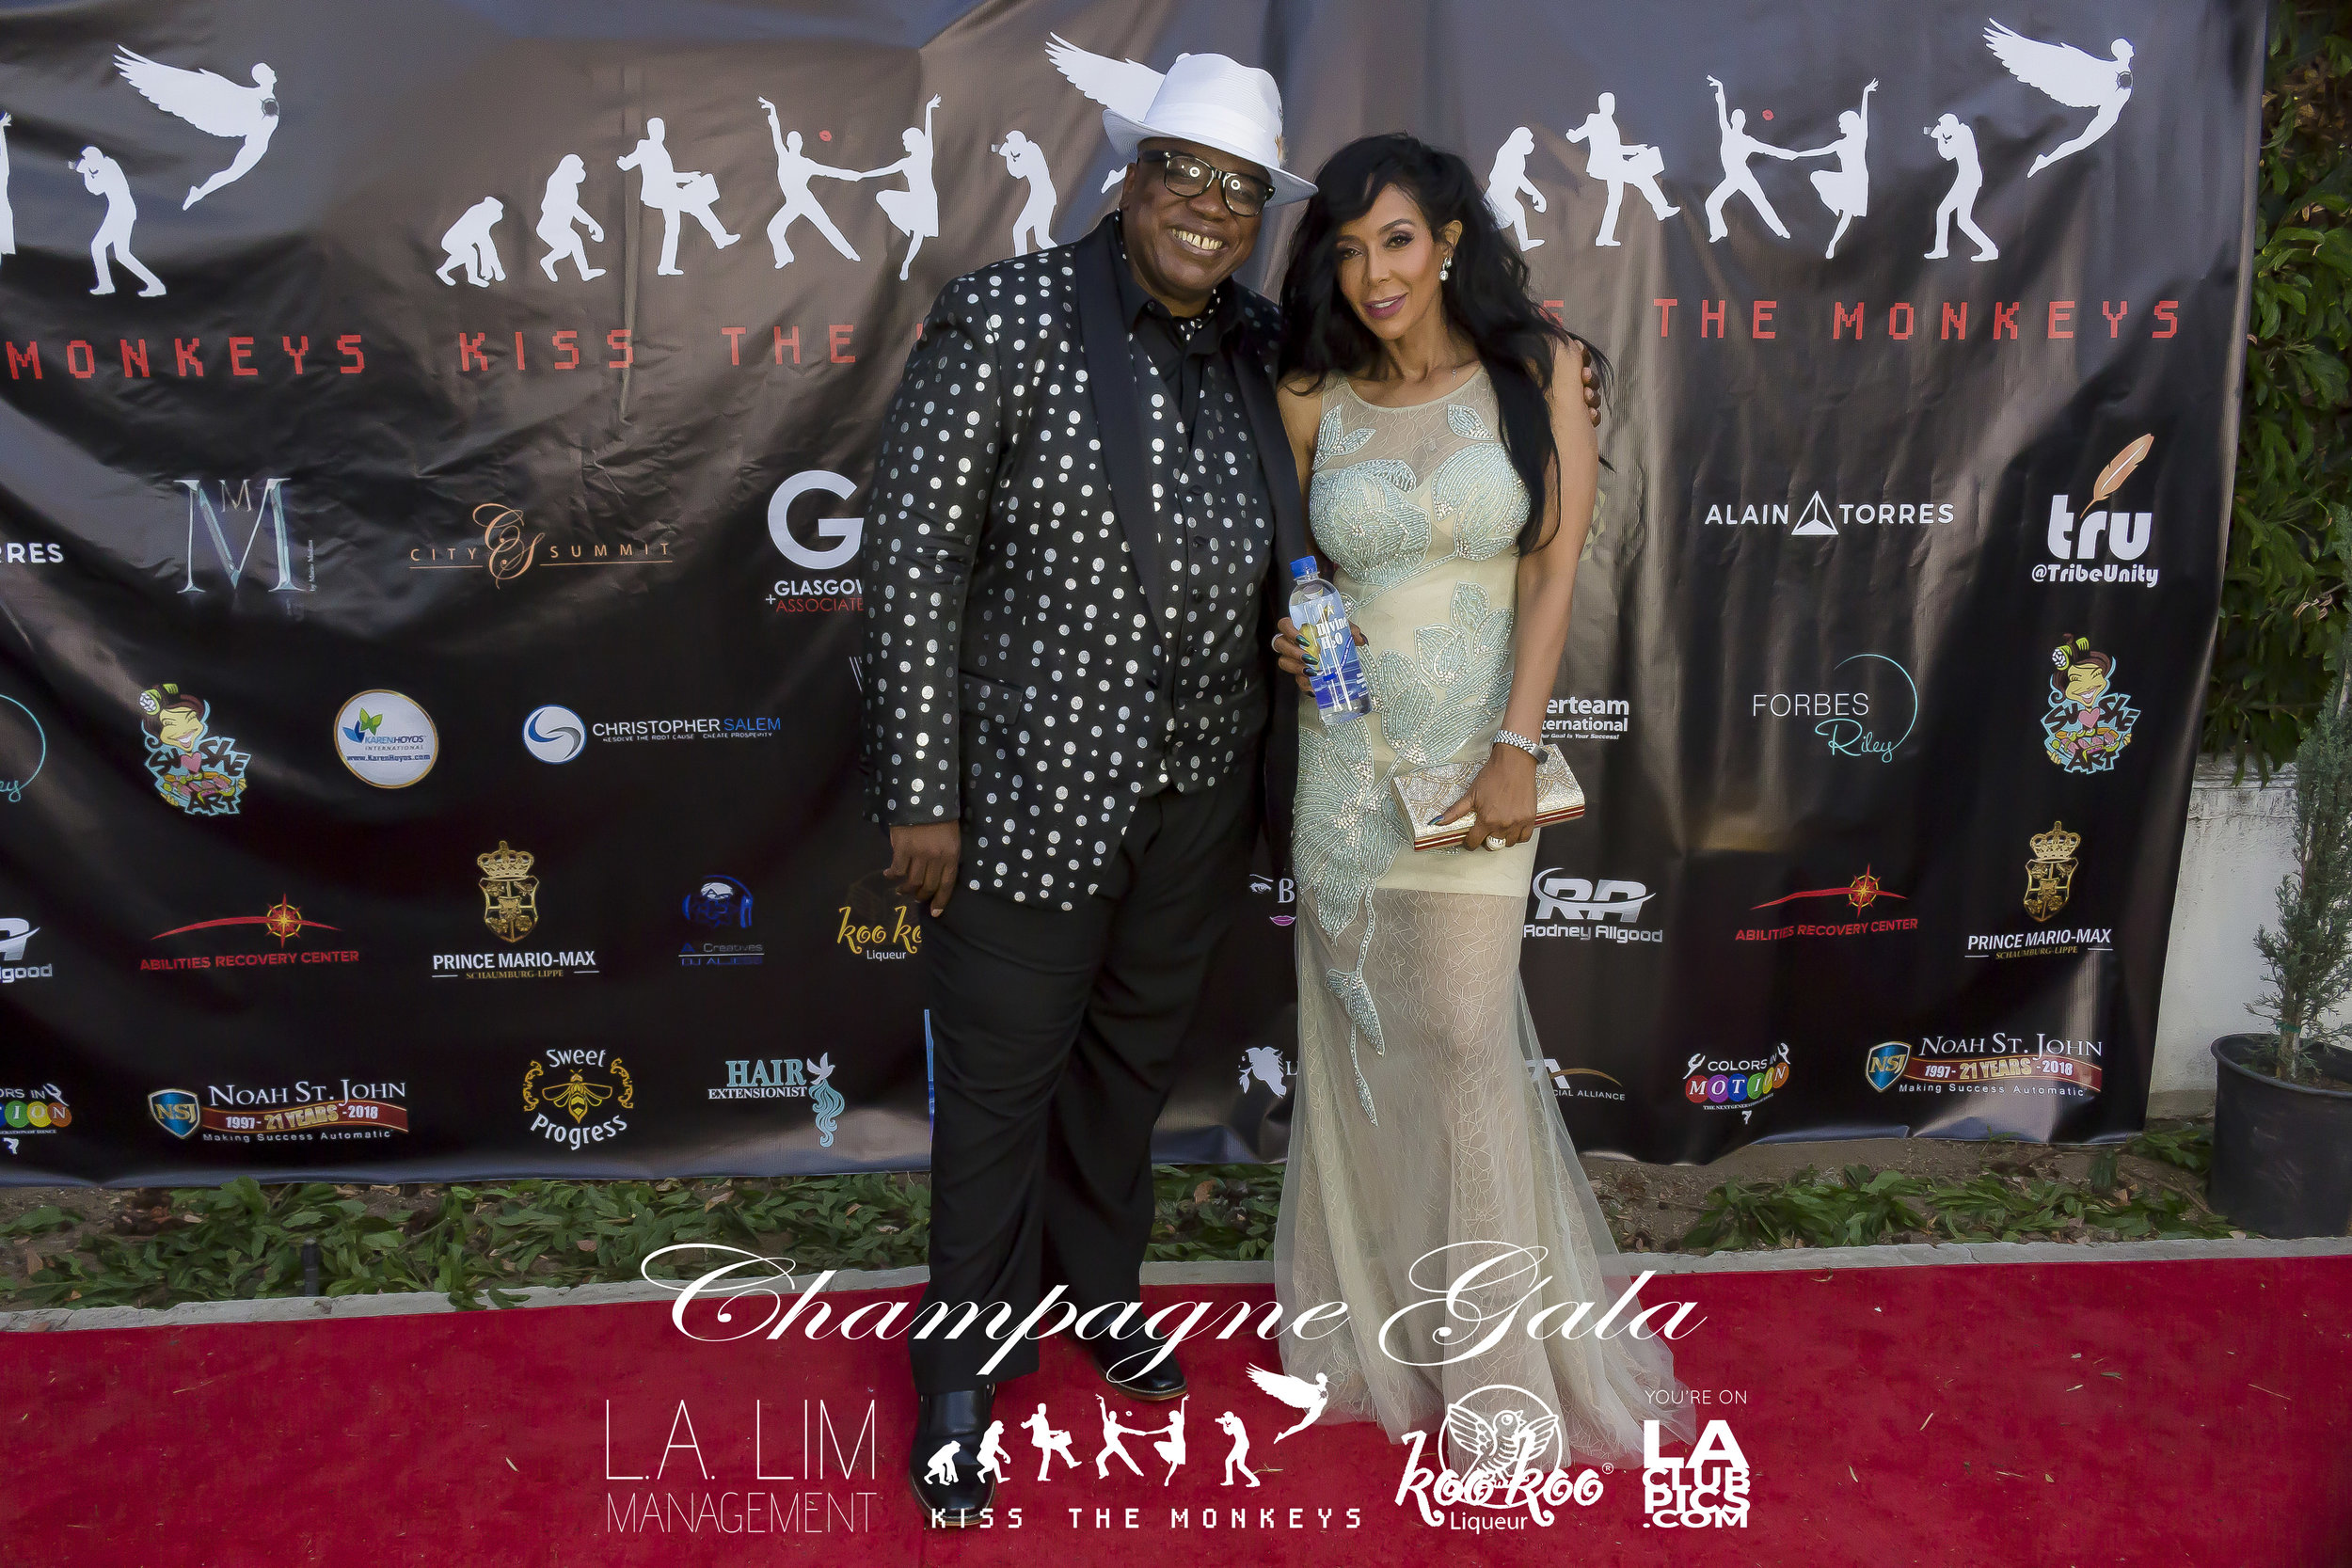 Kiss The Monkeys - Champagne Gala - 07-21-18_145.jpg